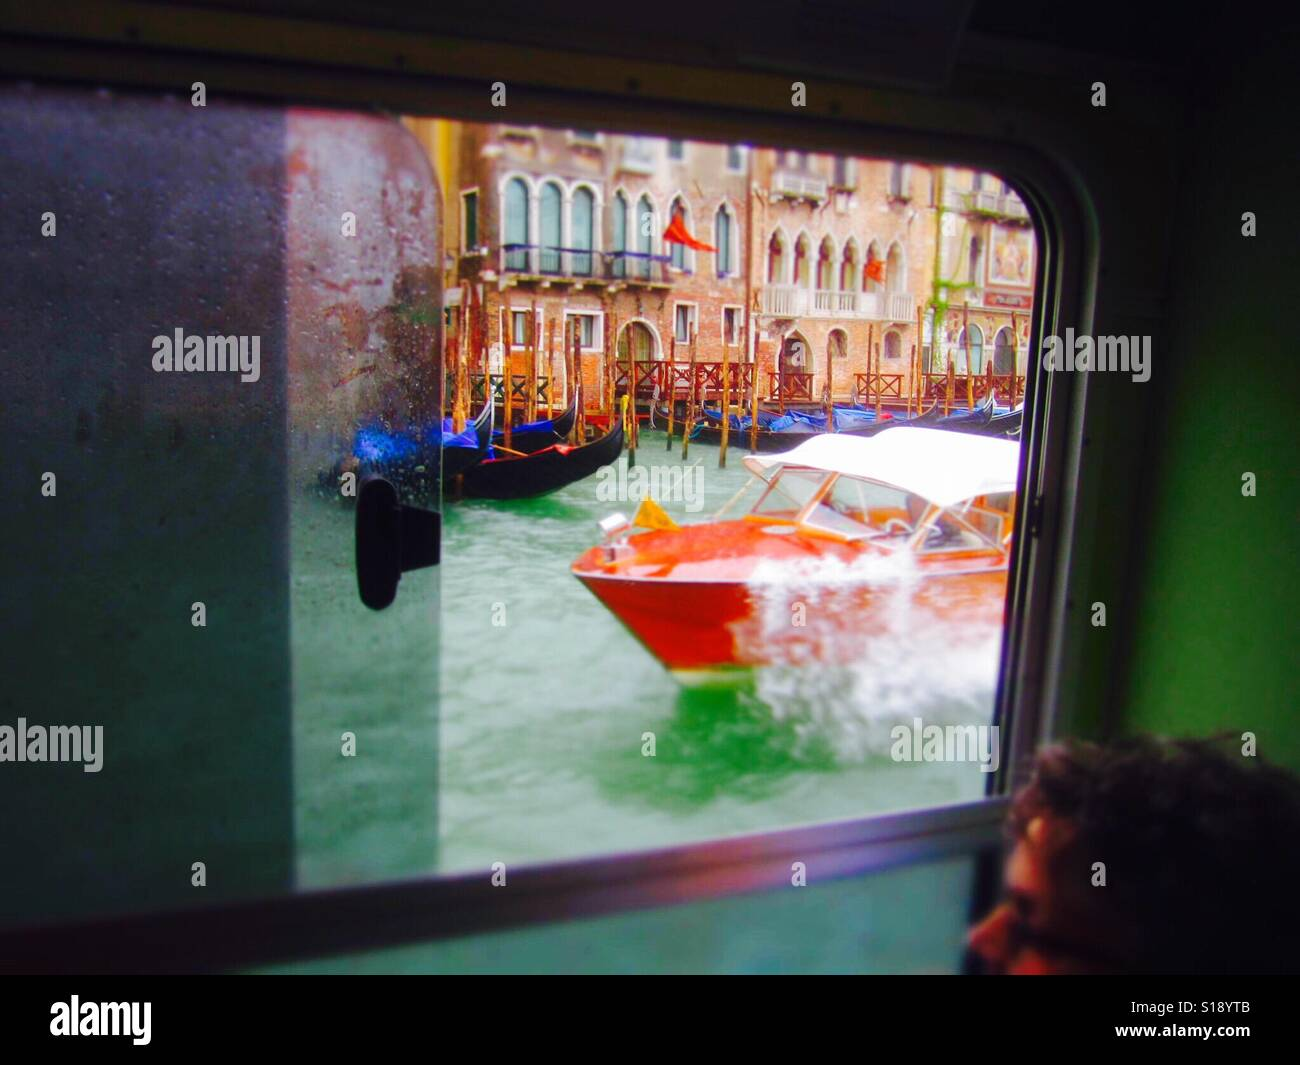 On a vaparetto ferry ride in Venice Italy - Stock Image